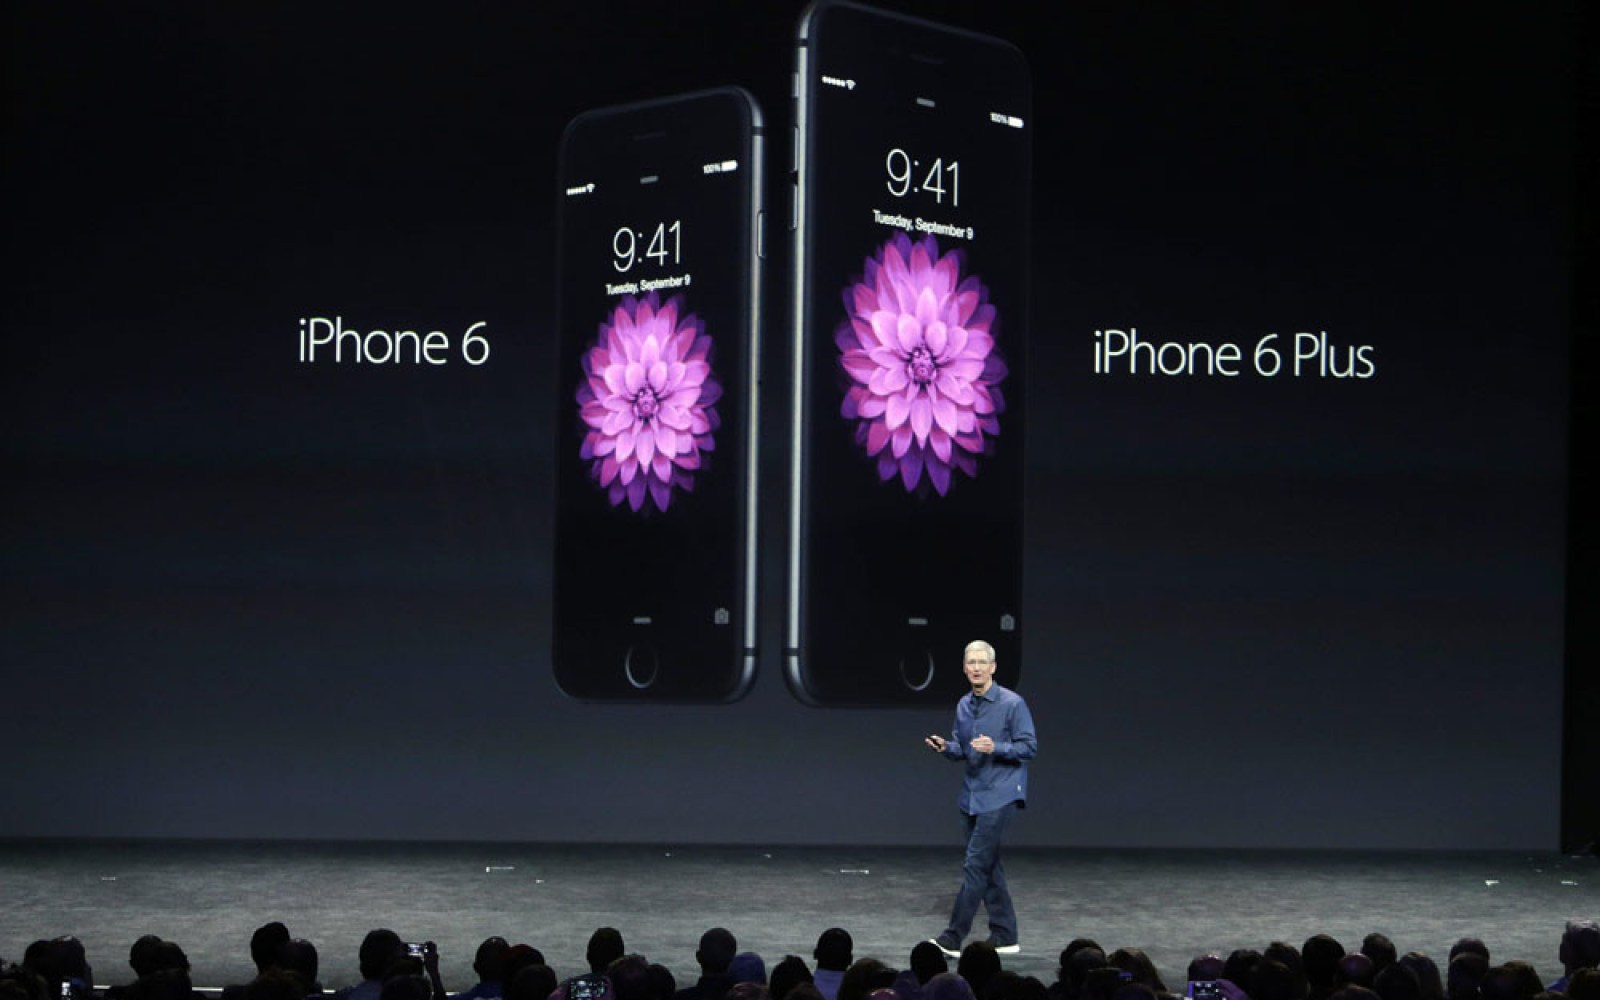 Apple involved in another infringement suit over iPhone name, this time in India